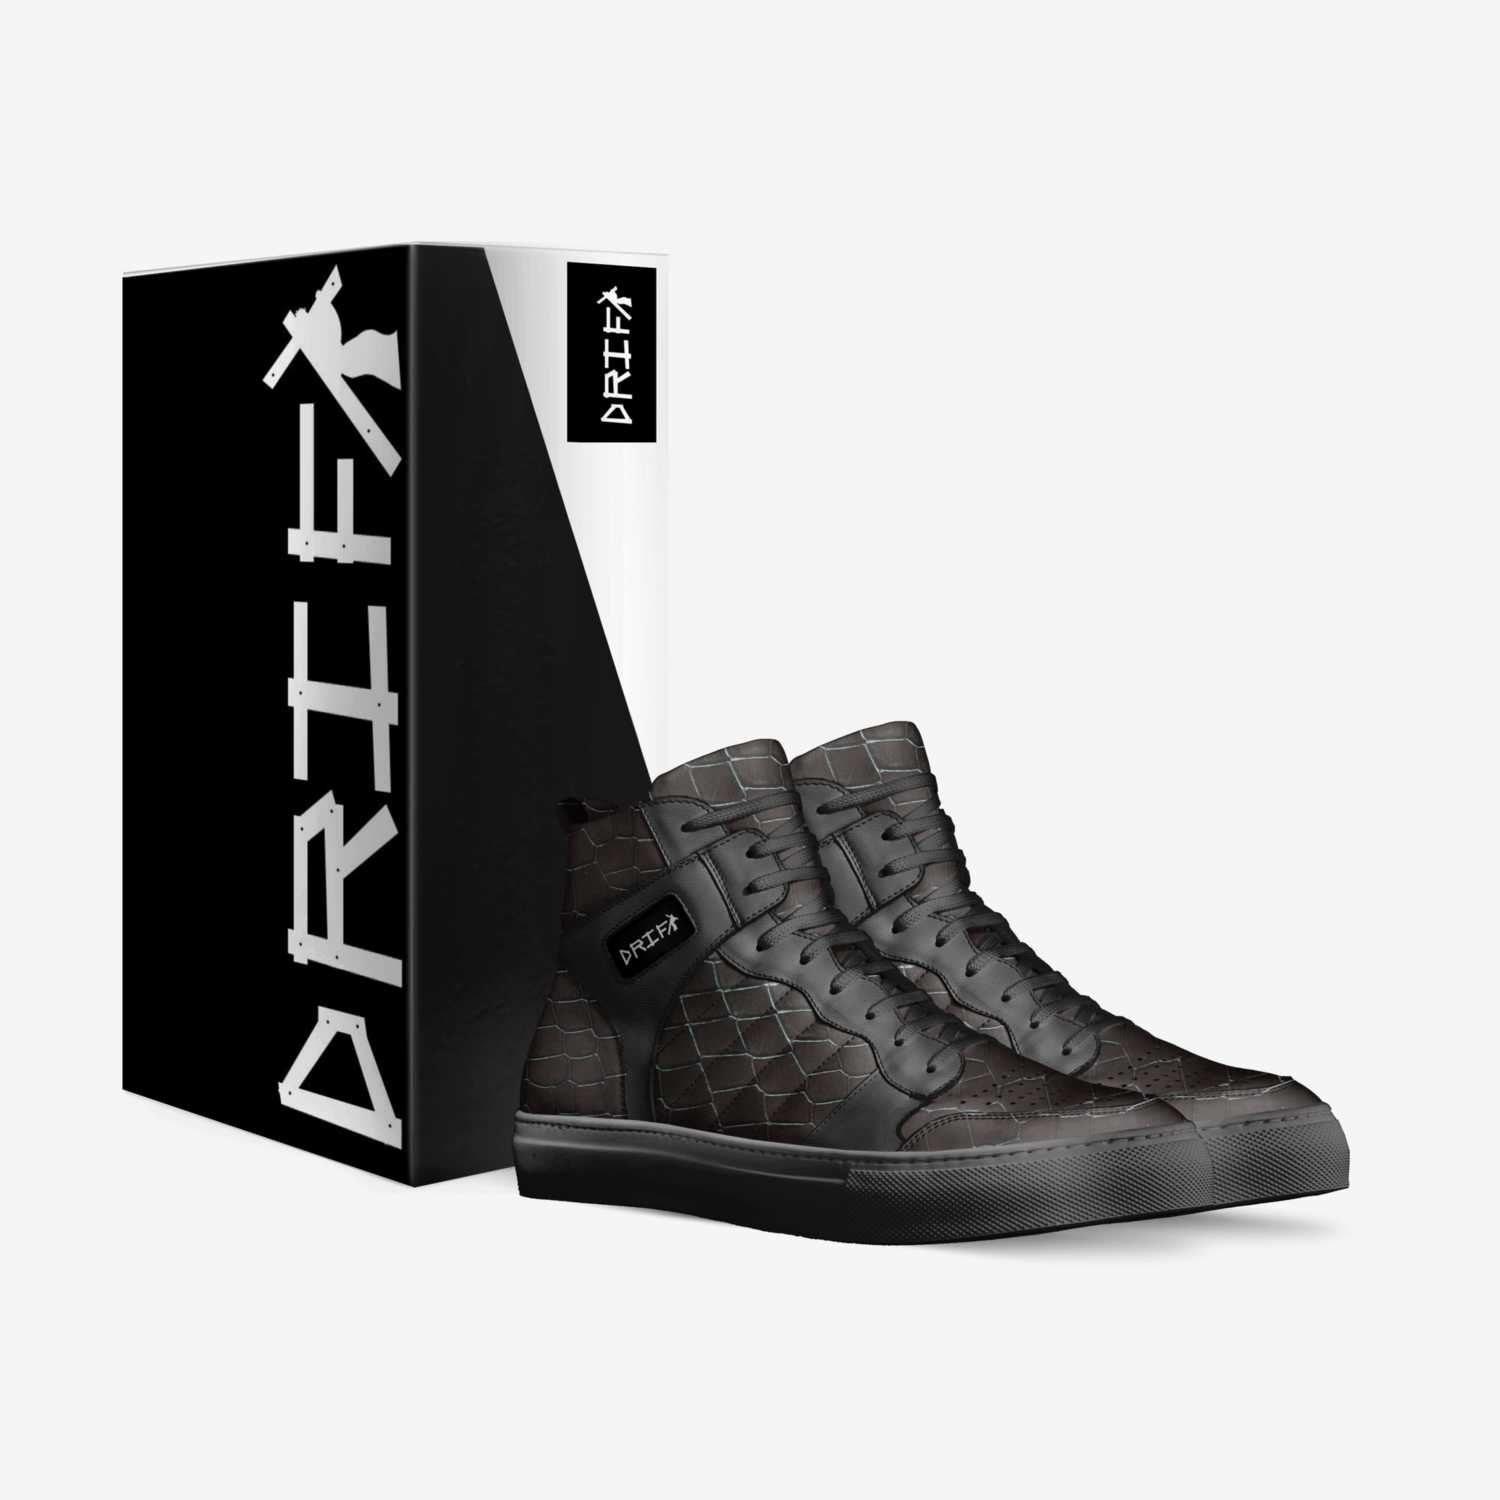 DRIFT custom made in Italy shoes by Davion Wells | Box view